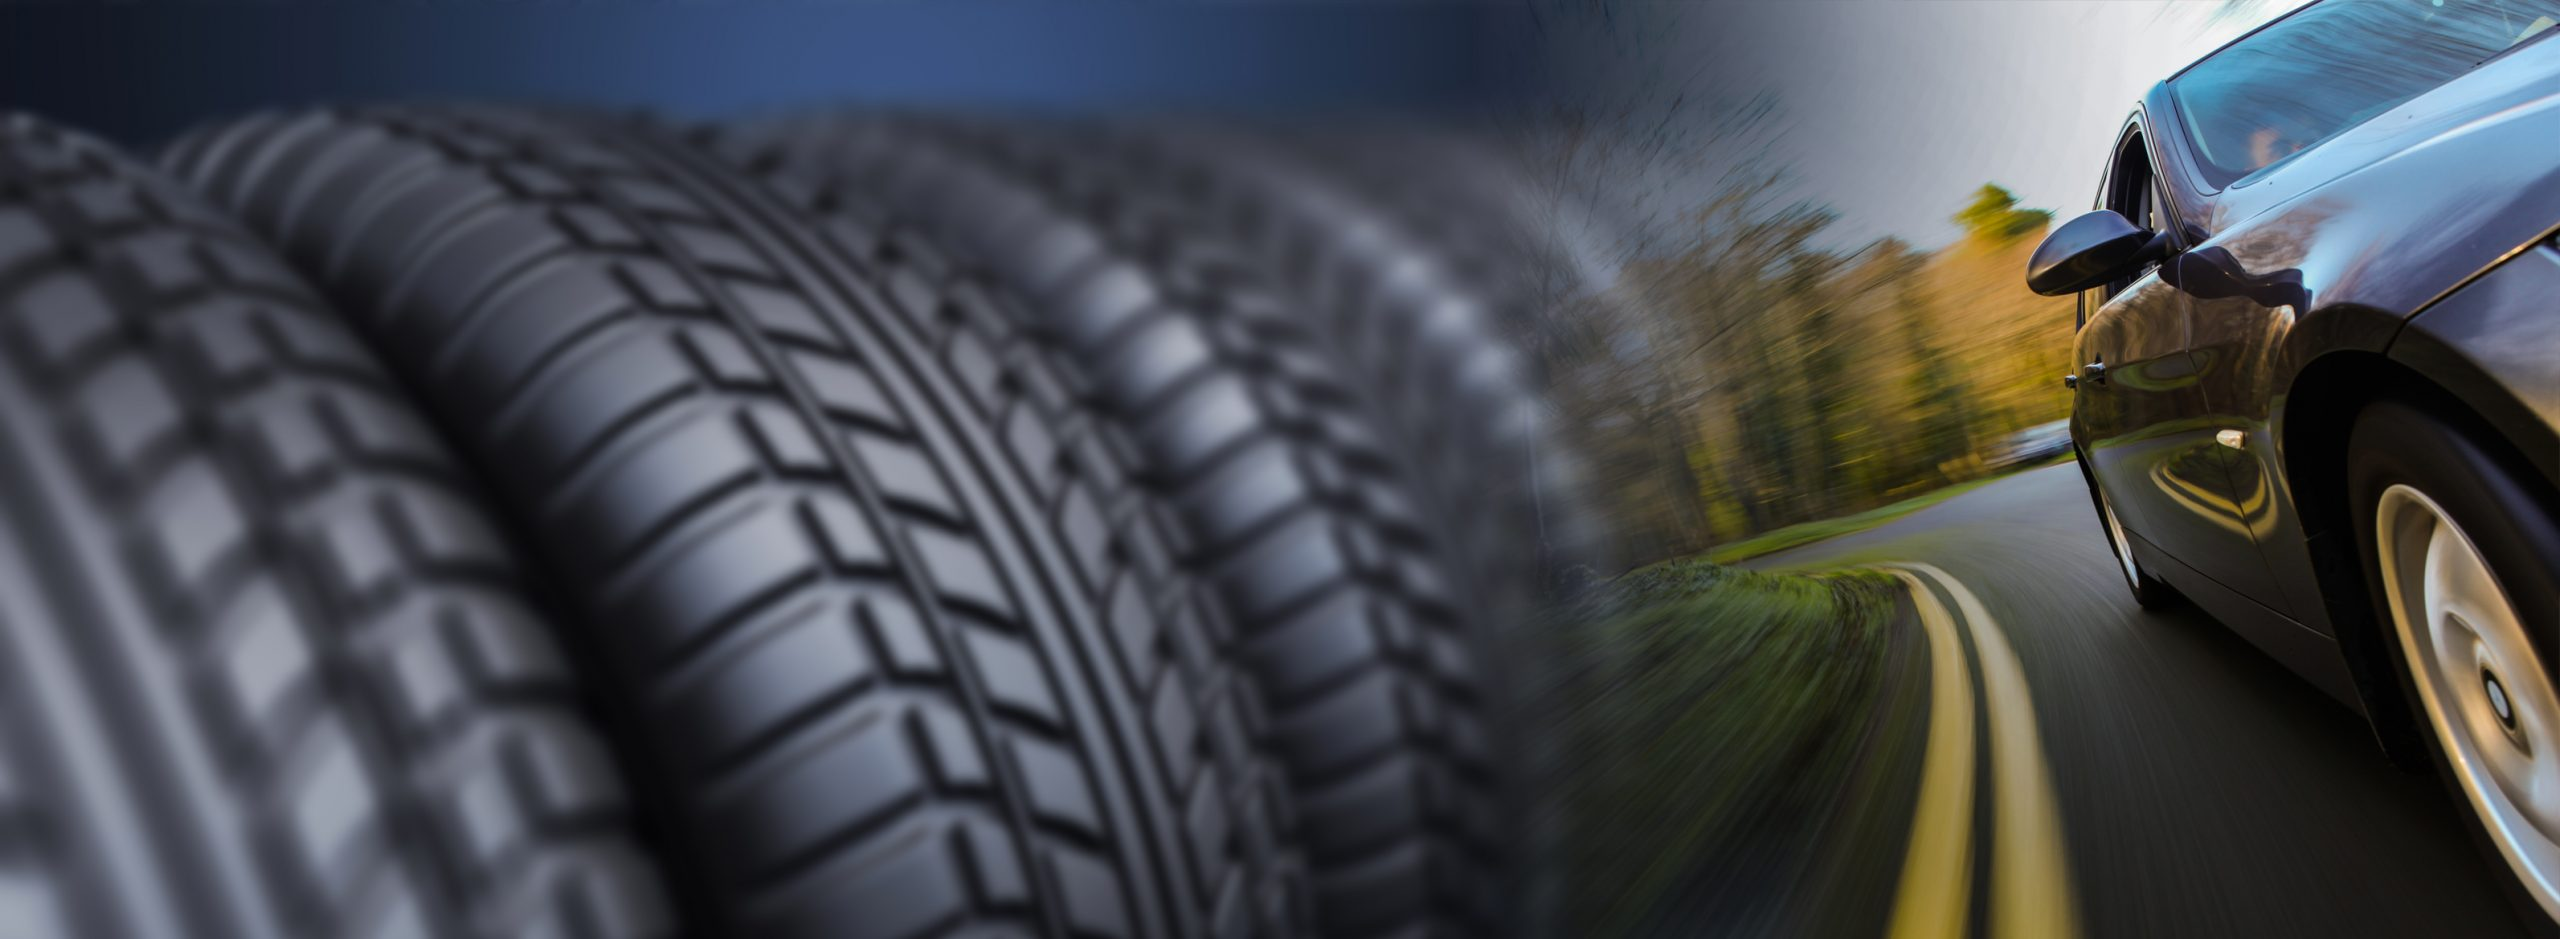 Tire Review Brand Page Header